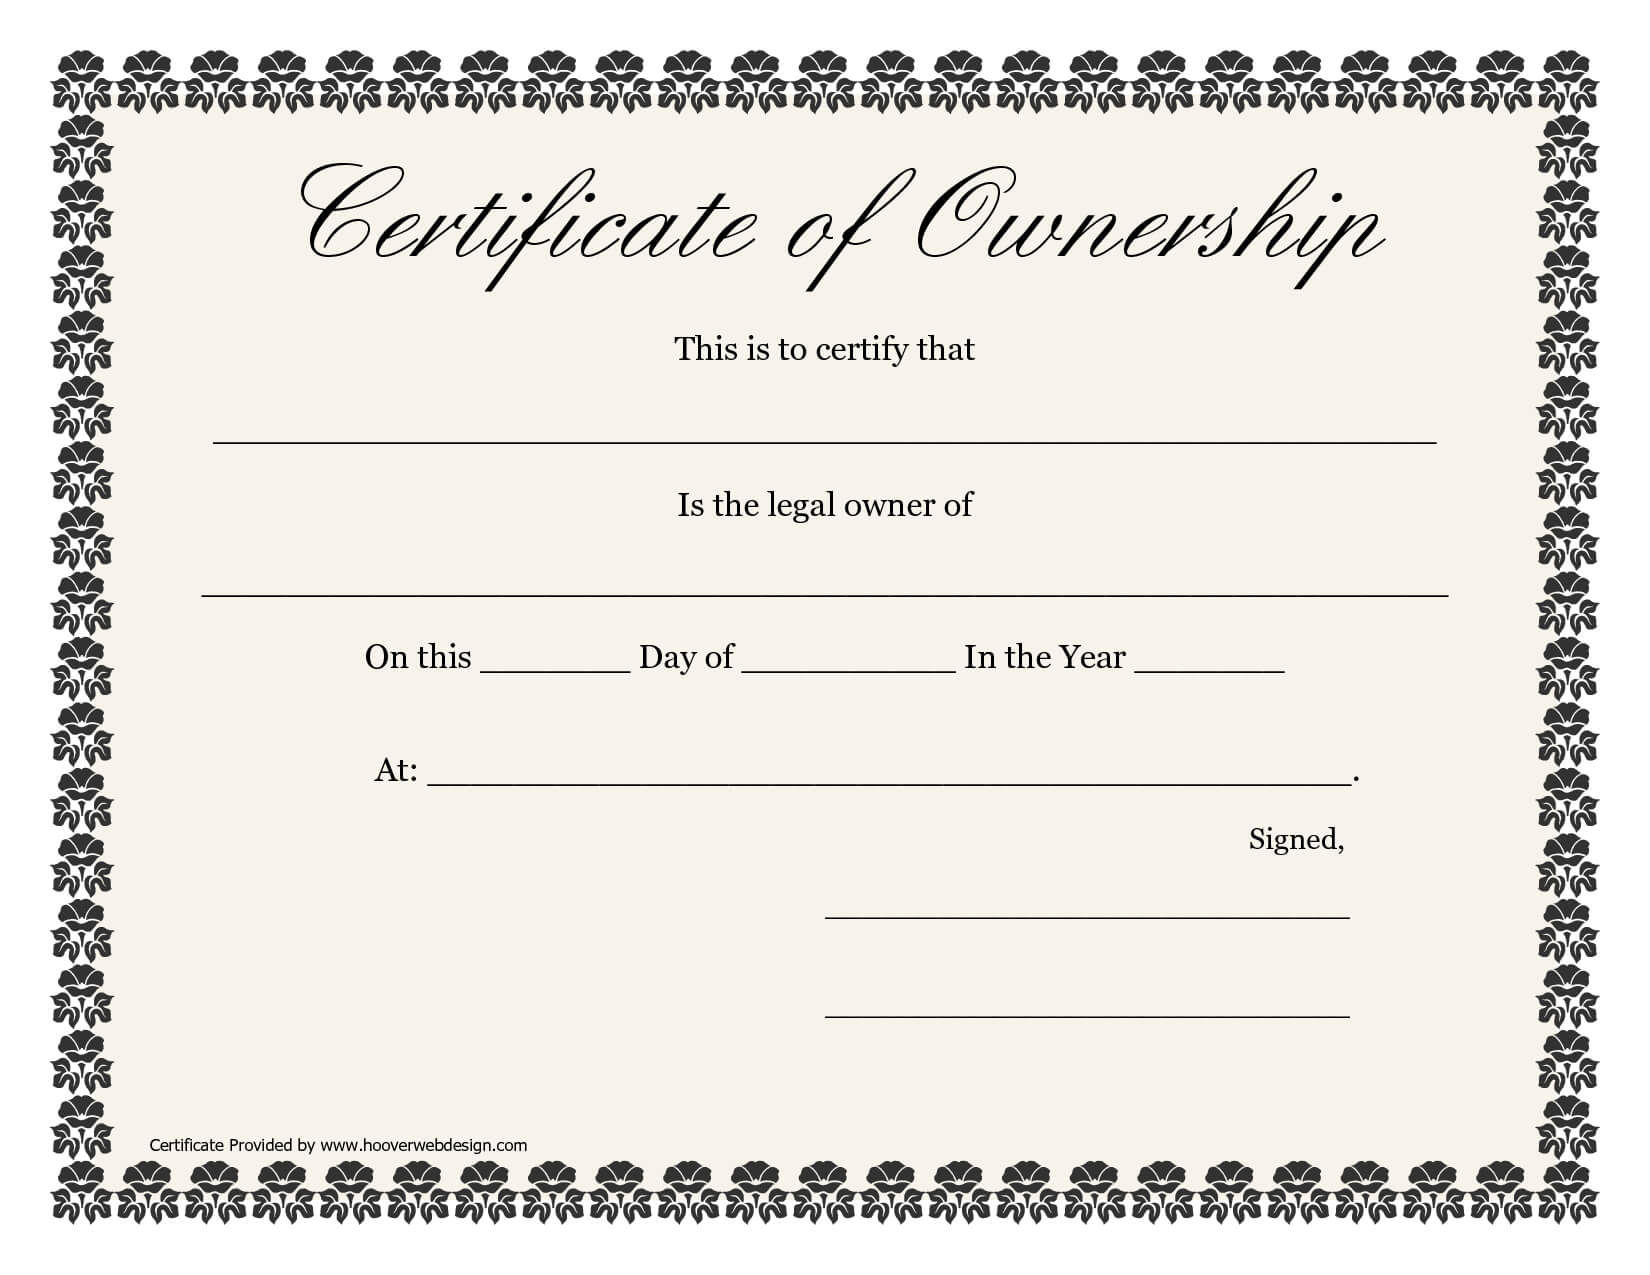 ❤️5+ Free Sample Of Certificate Of Ownership Form Template❤️ Throughout Certificate Of Ownership Template